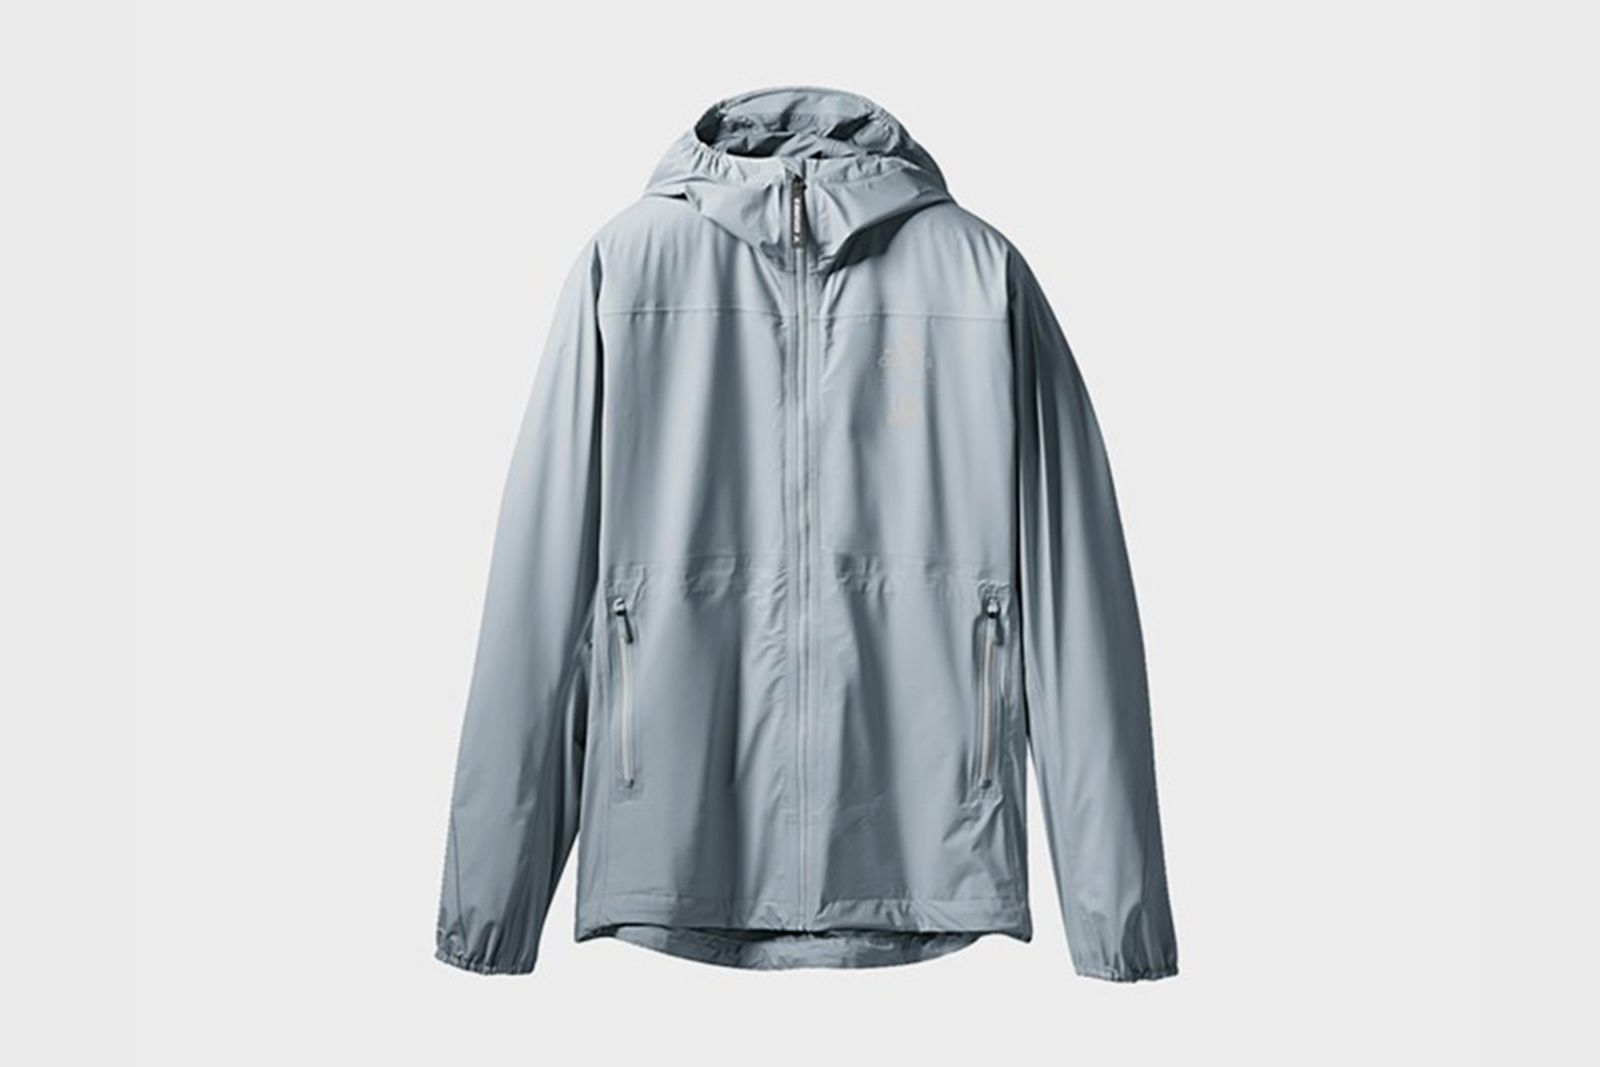 sns clothing Sneakersnstuff winter sale